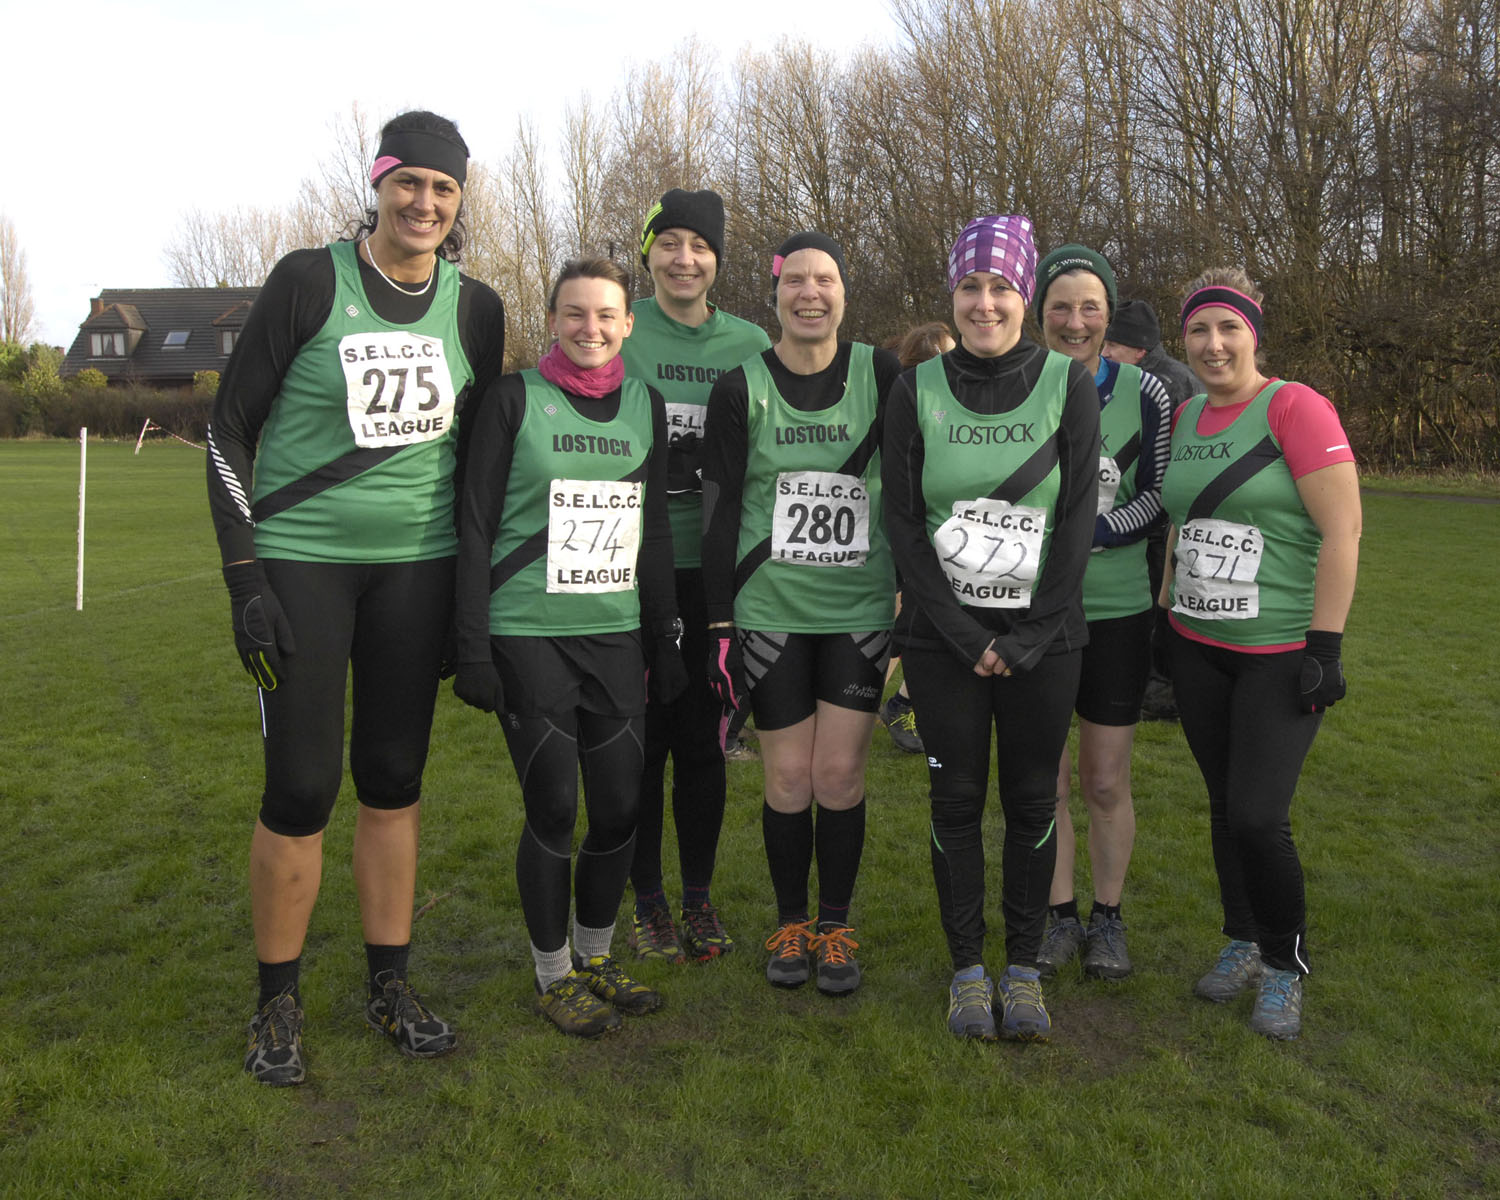 S E LancsXC Leigh21 Jan 2012 Lostock Ladies Team LostockLadies1203D111